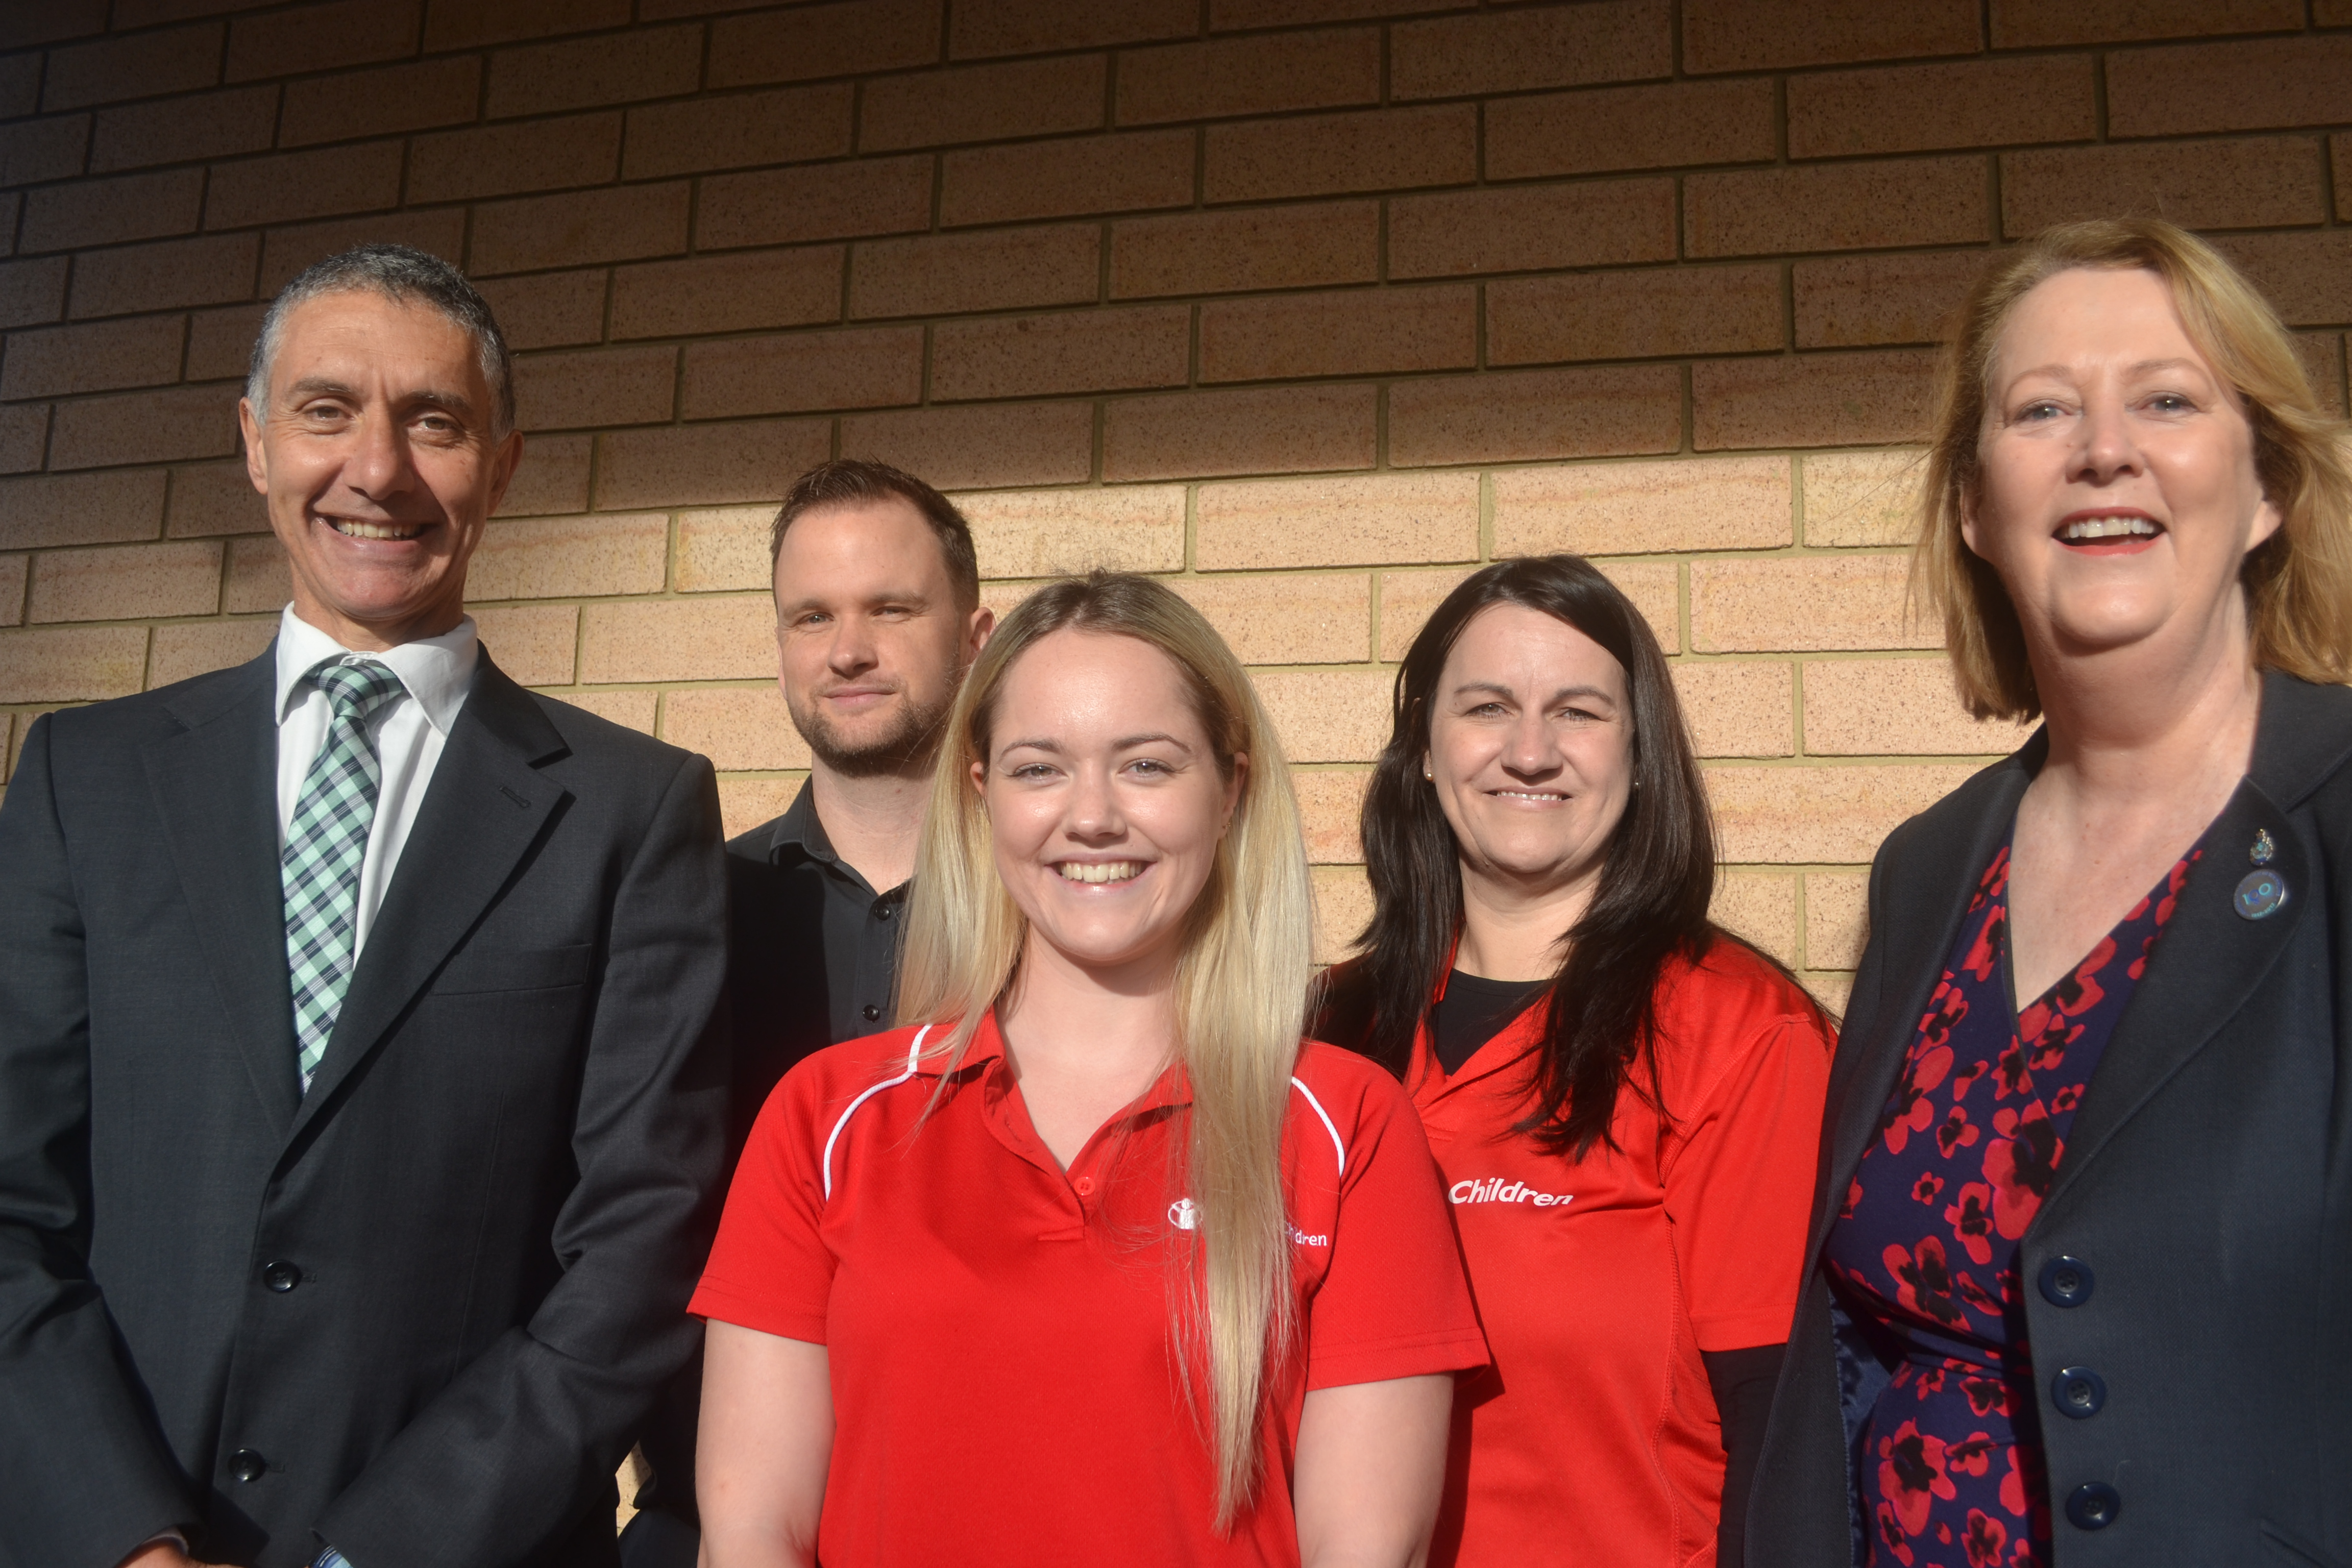 Armadale MLA Tony Buti, youth workers Jamie Barr, Samantha Dragon and Heidi Holmen, and Police Minister Michelle Roberts at the funding announcement for AYIP.